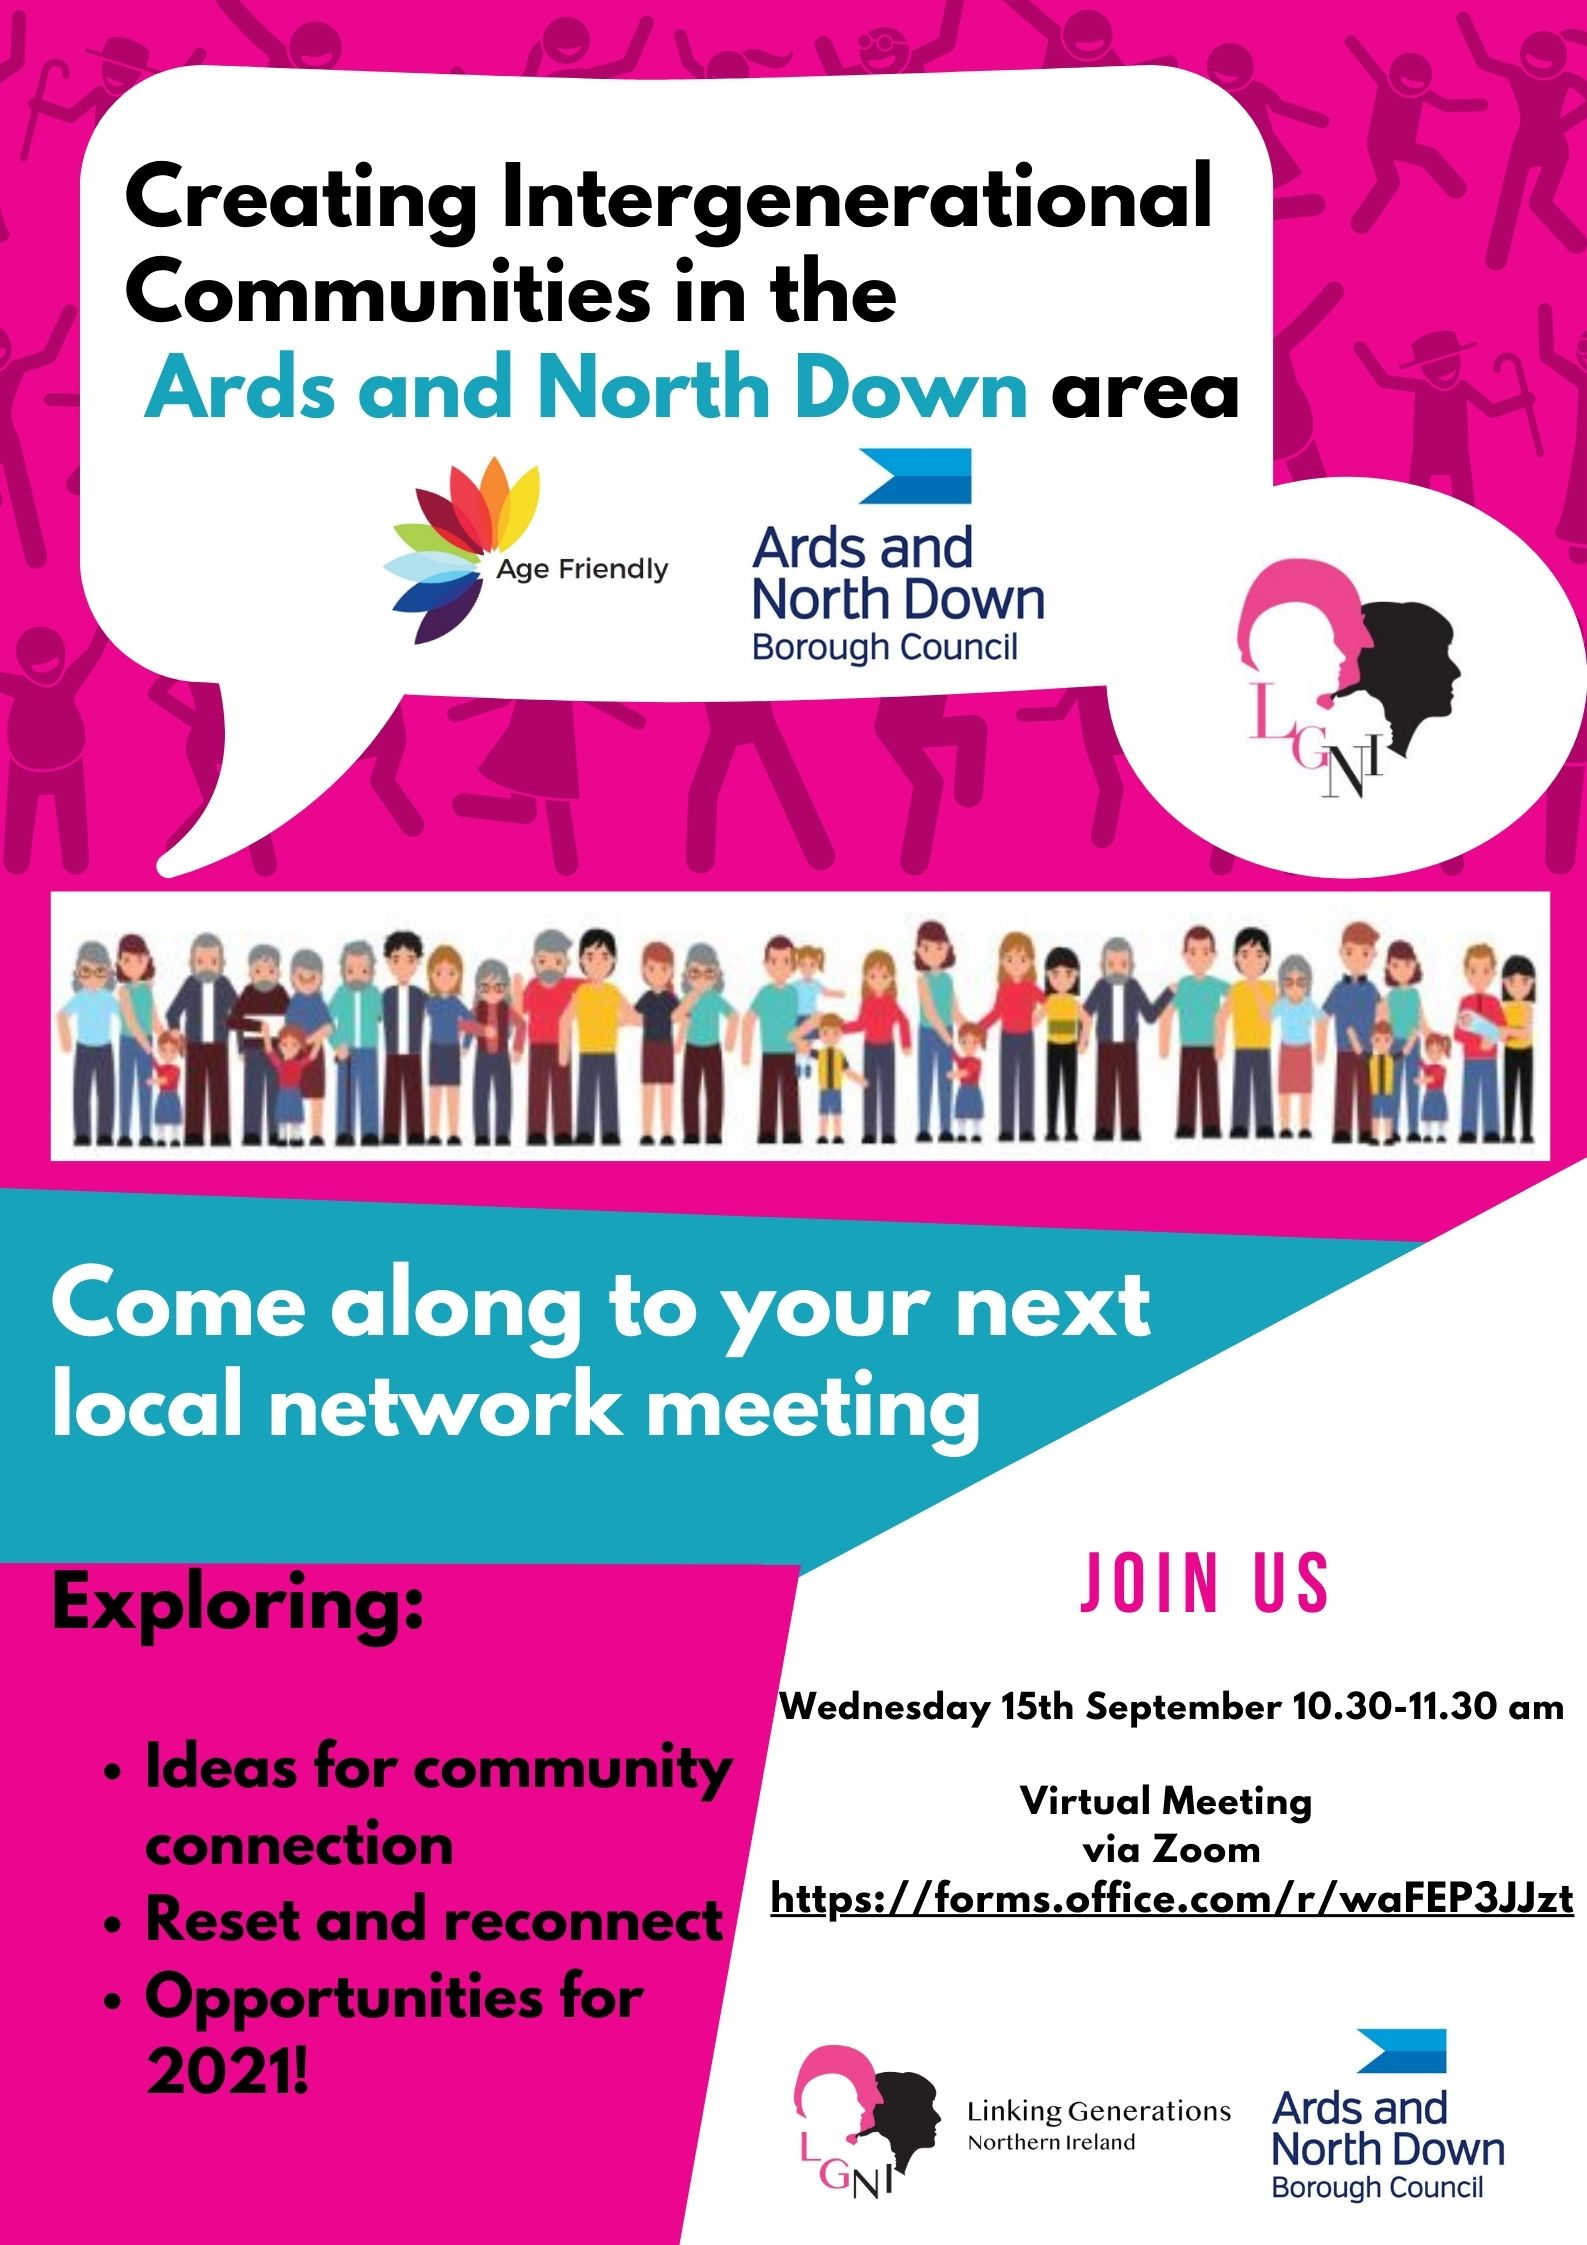 LGNI Ards and North Down Network Meeting